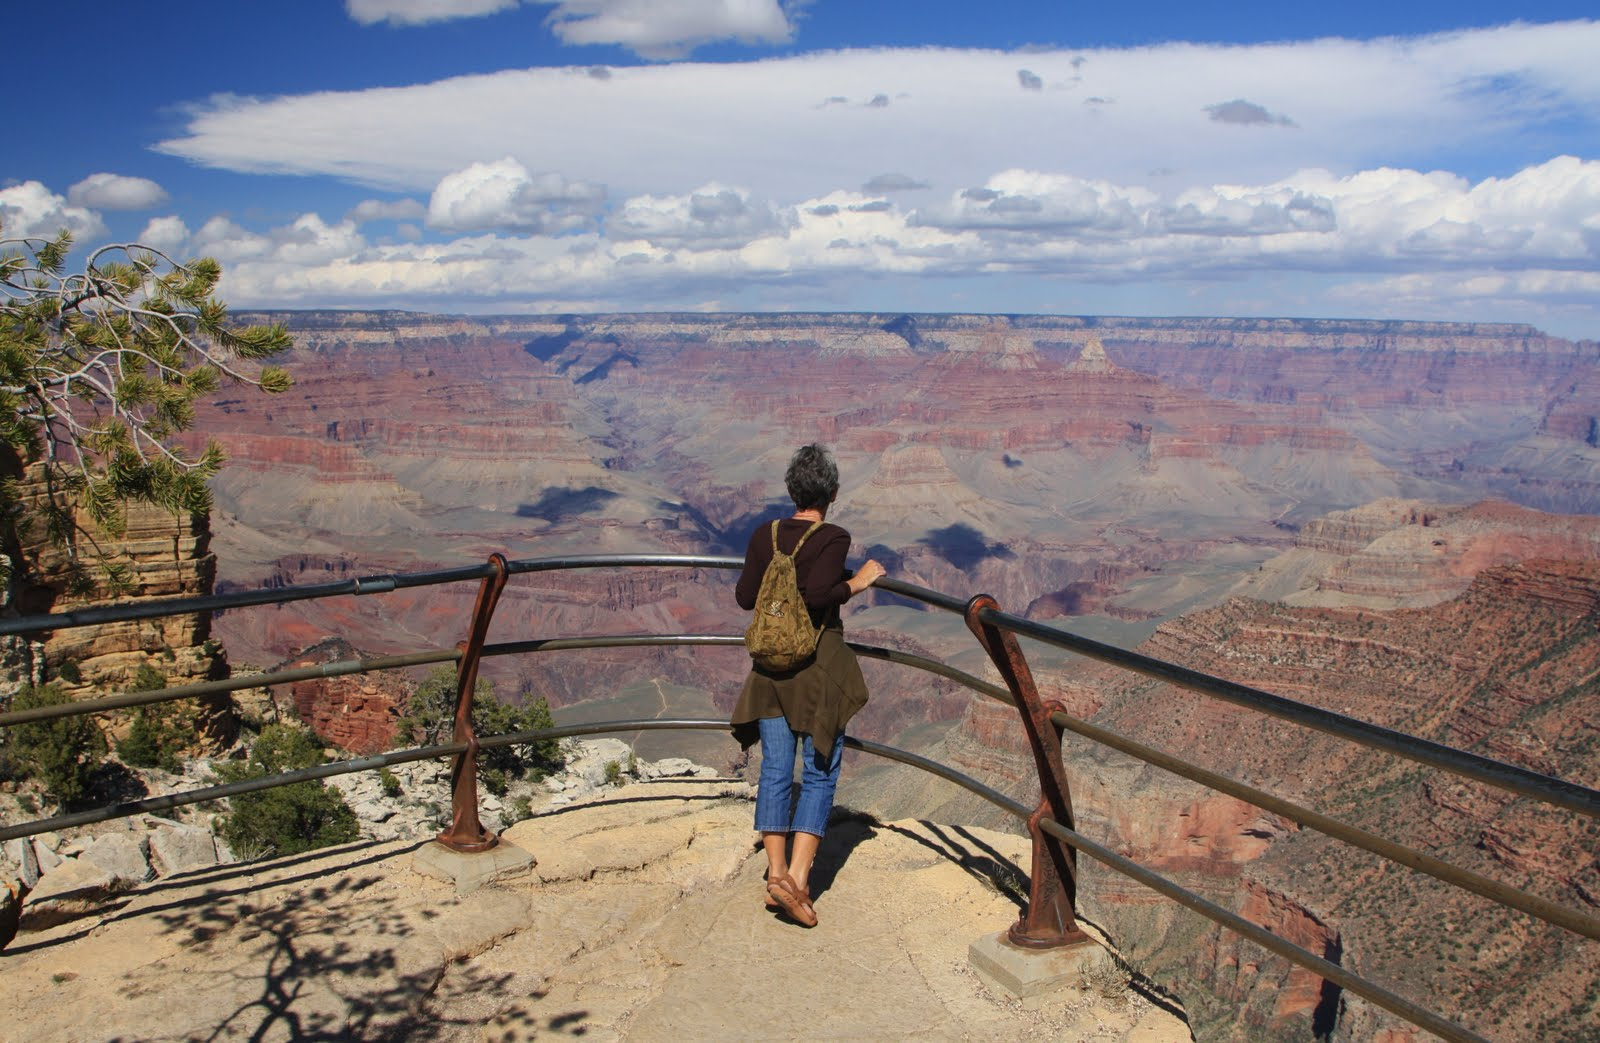 Standing at the railing of the Grand Canyon